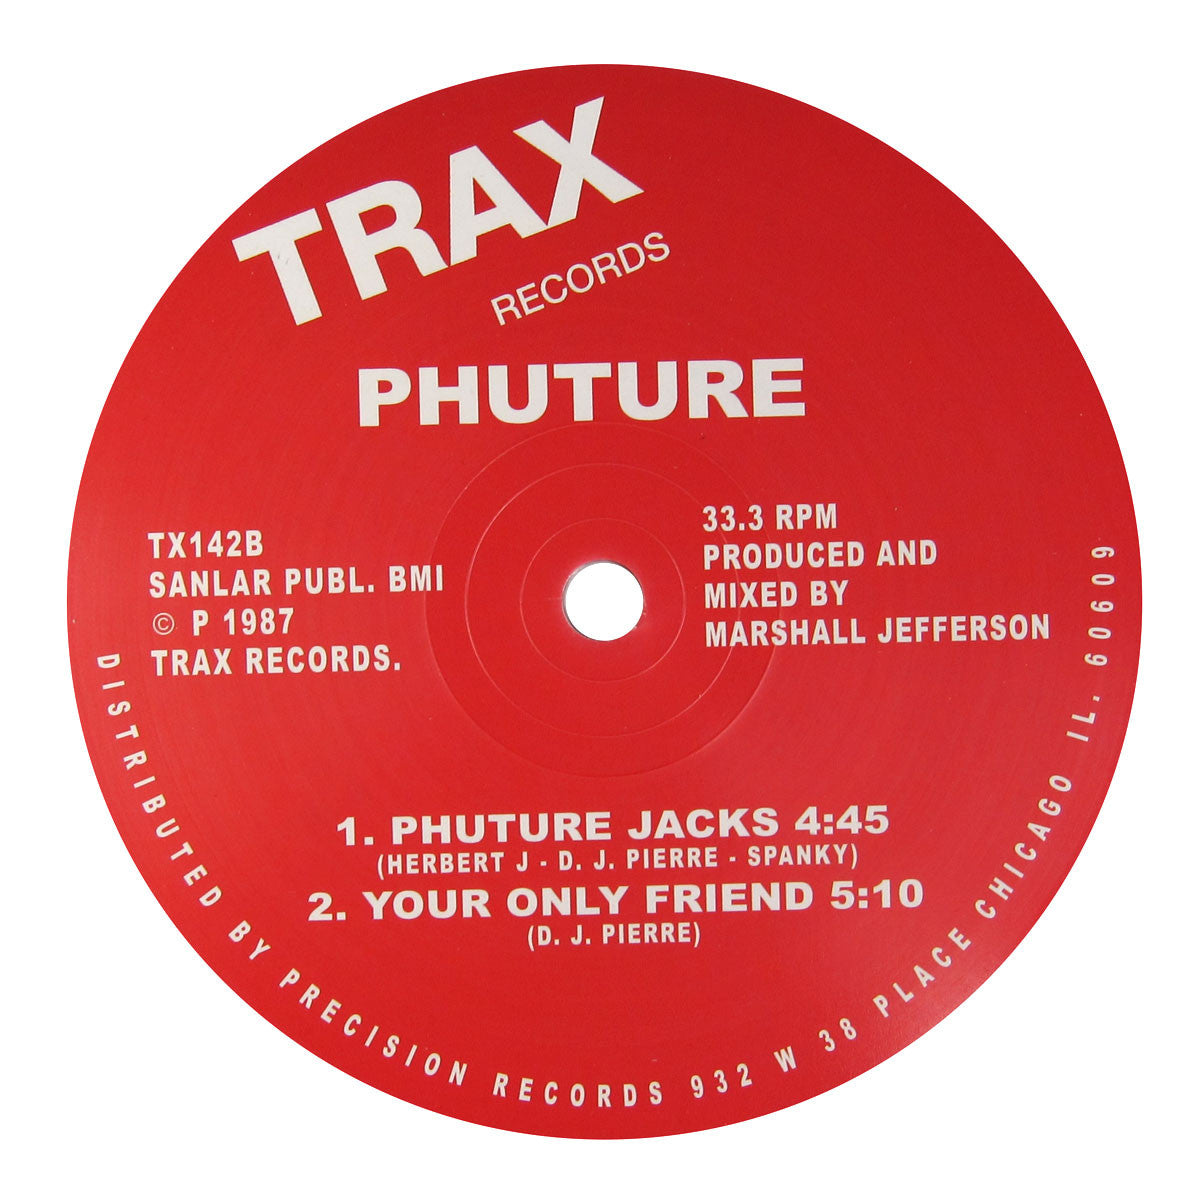 phuture acid tracks vinyl 12